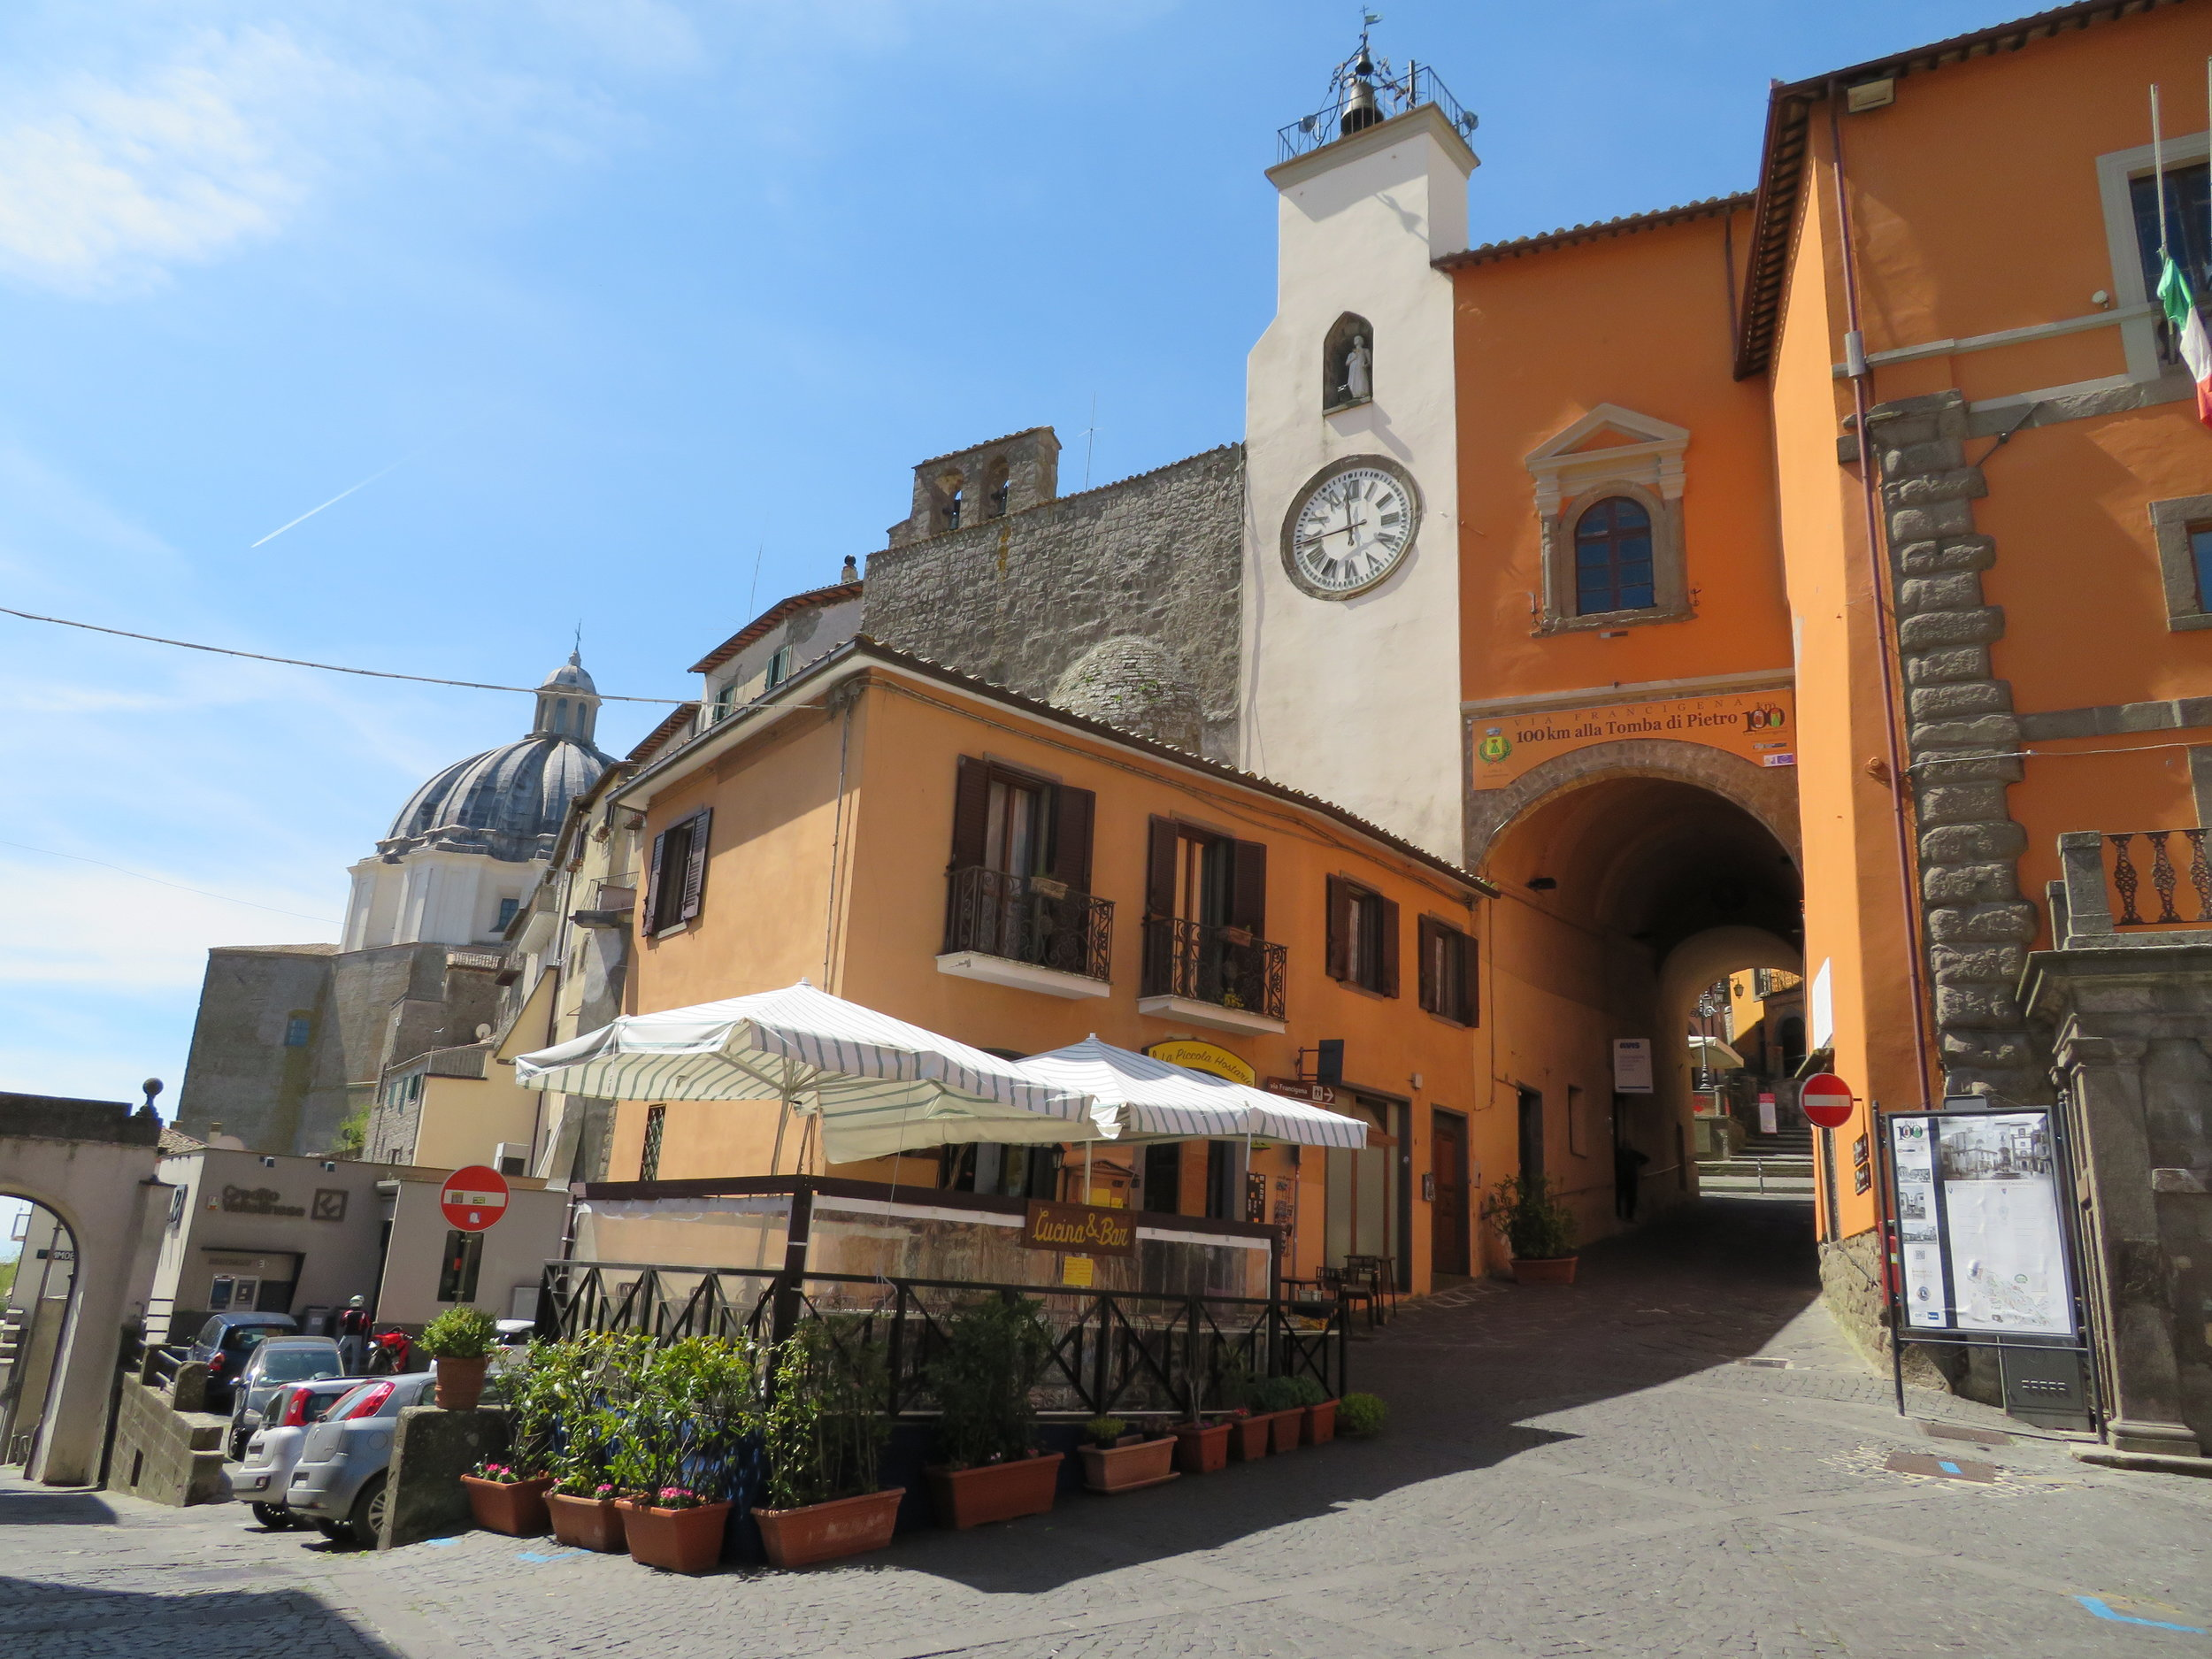 There always seems to be a beautiful piazza for coffee.